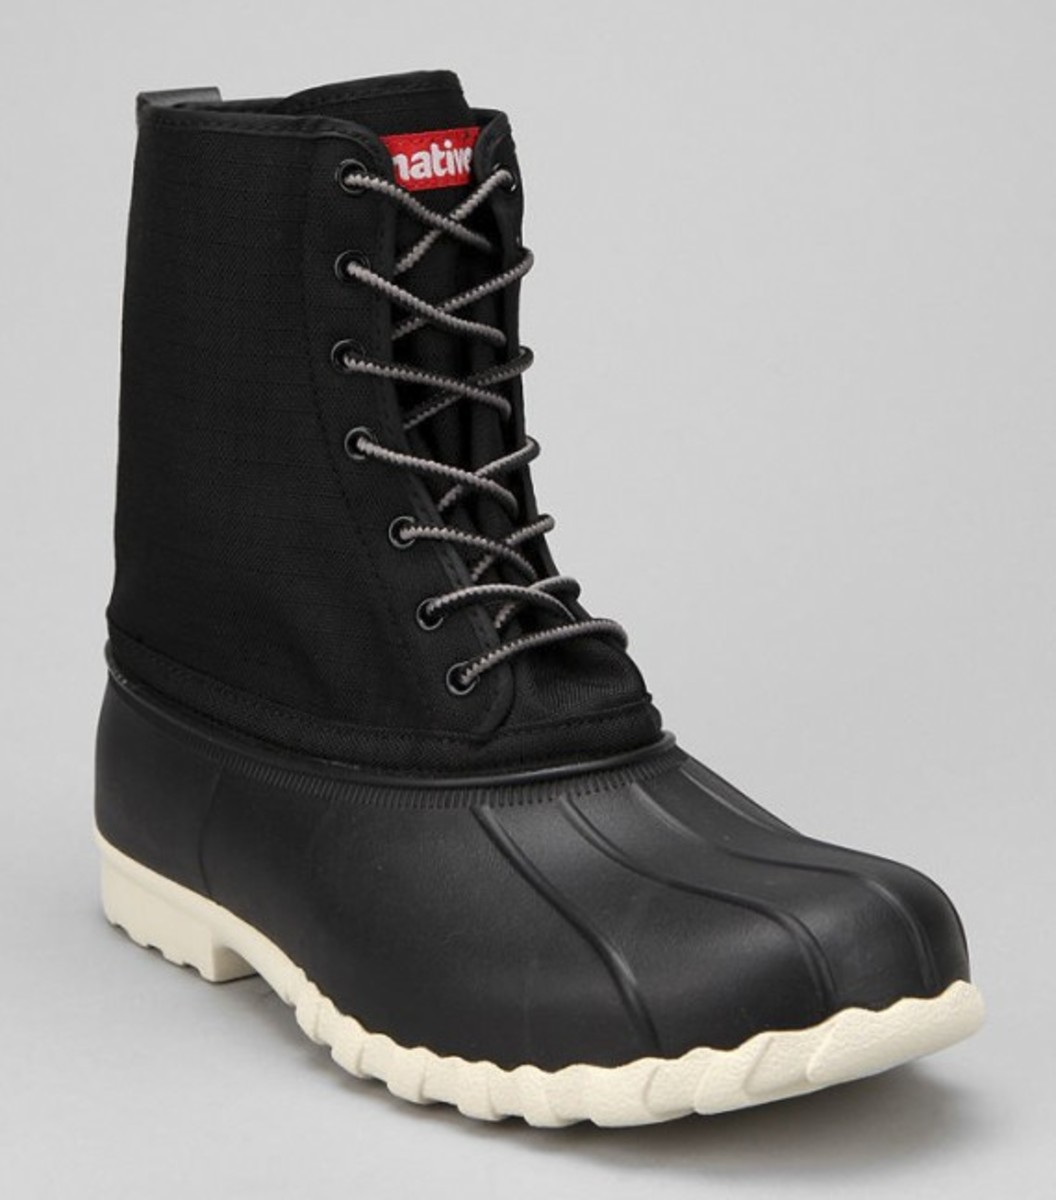 native-jimmy-duck-boots-black-02